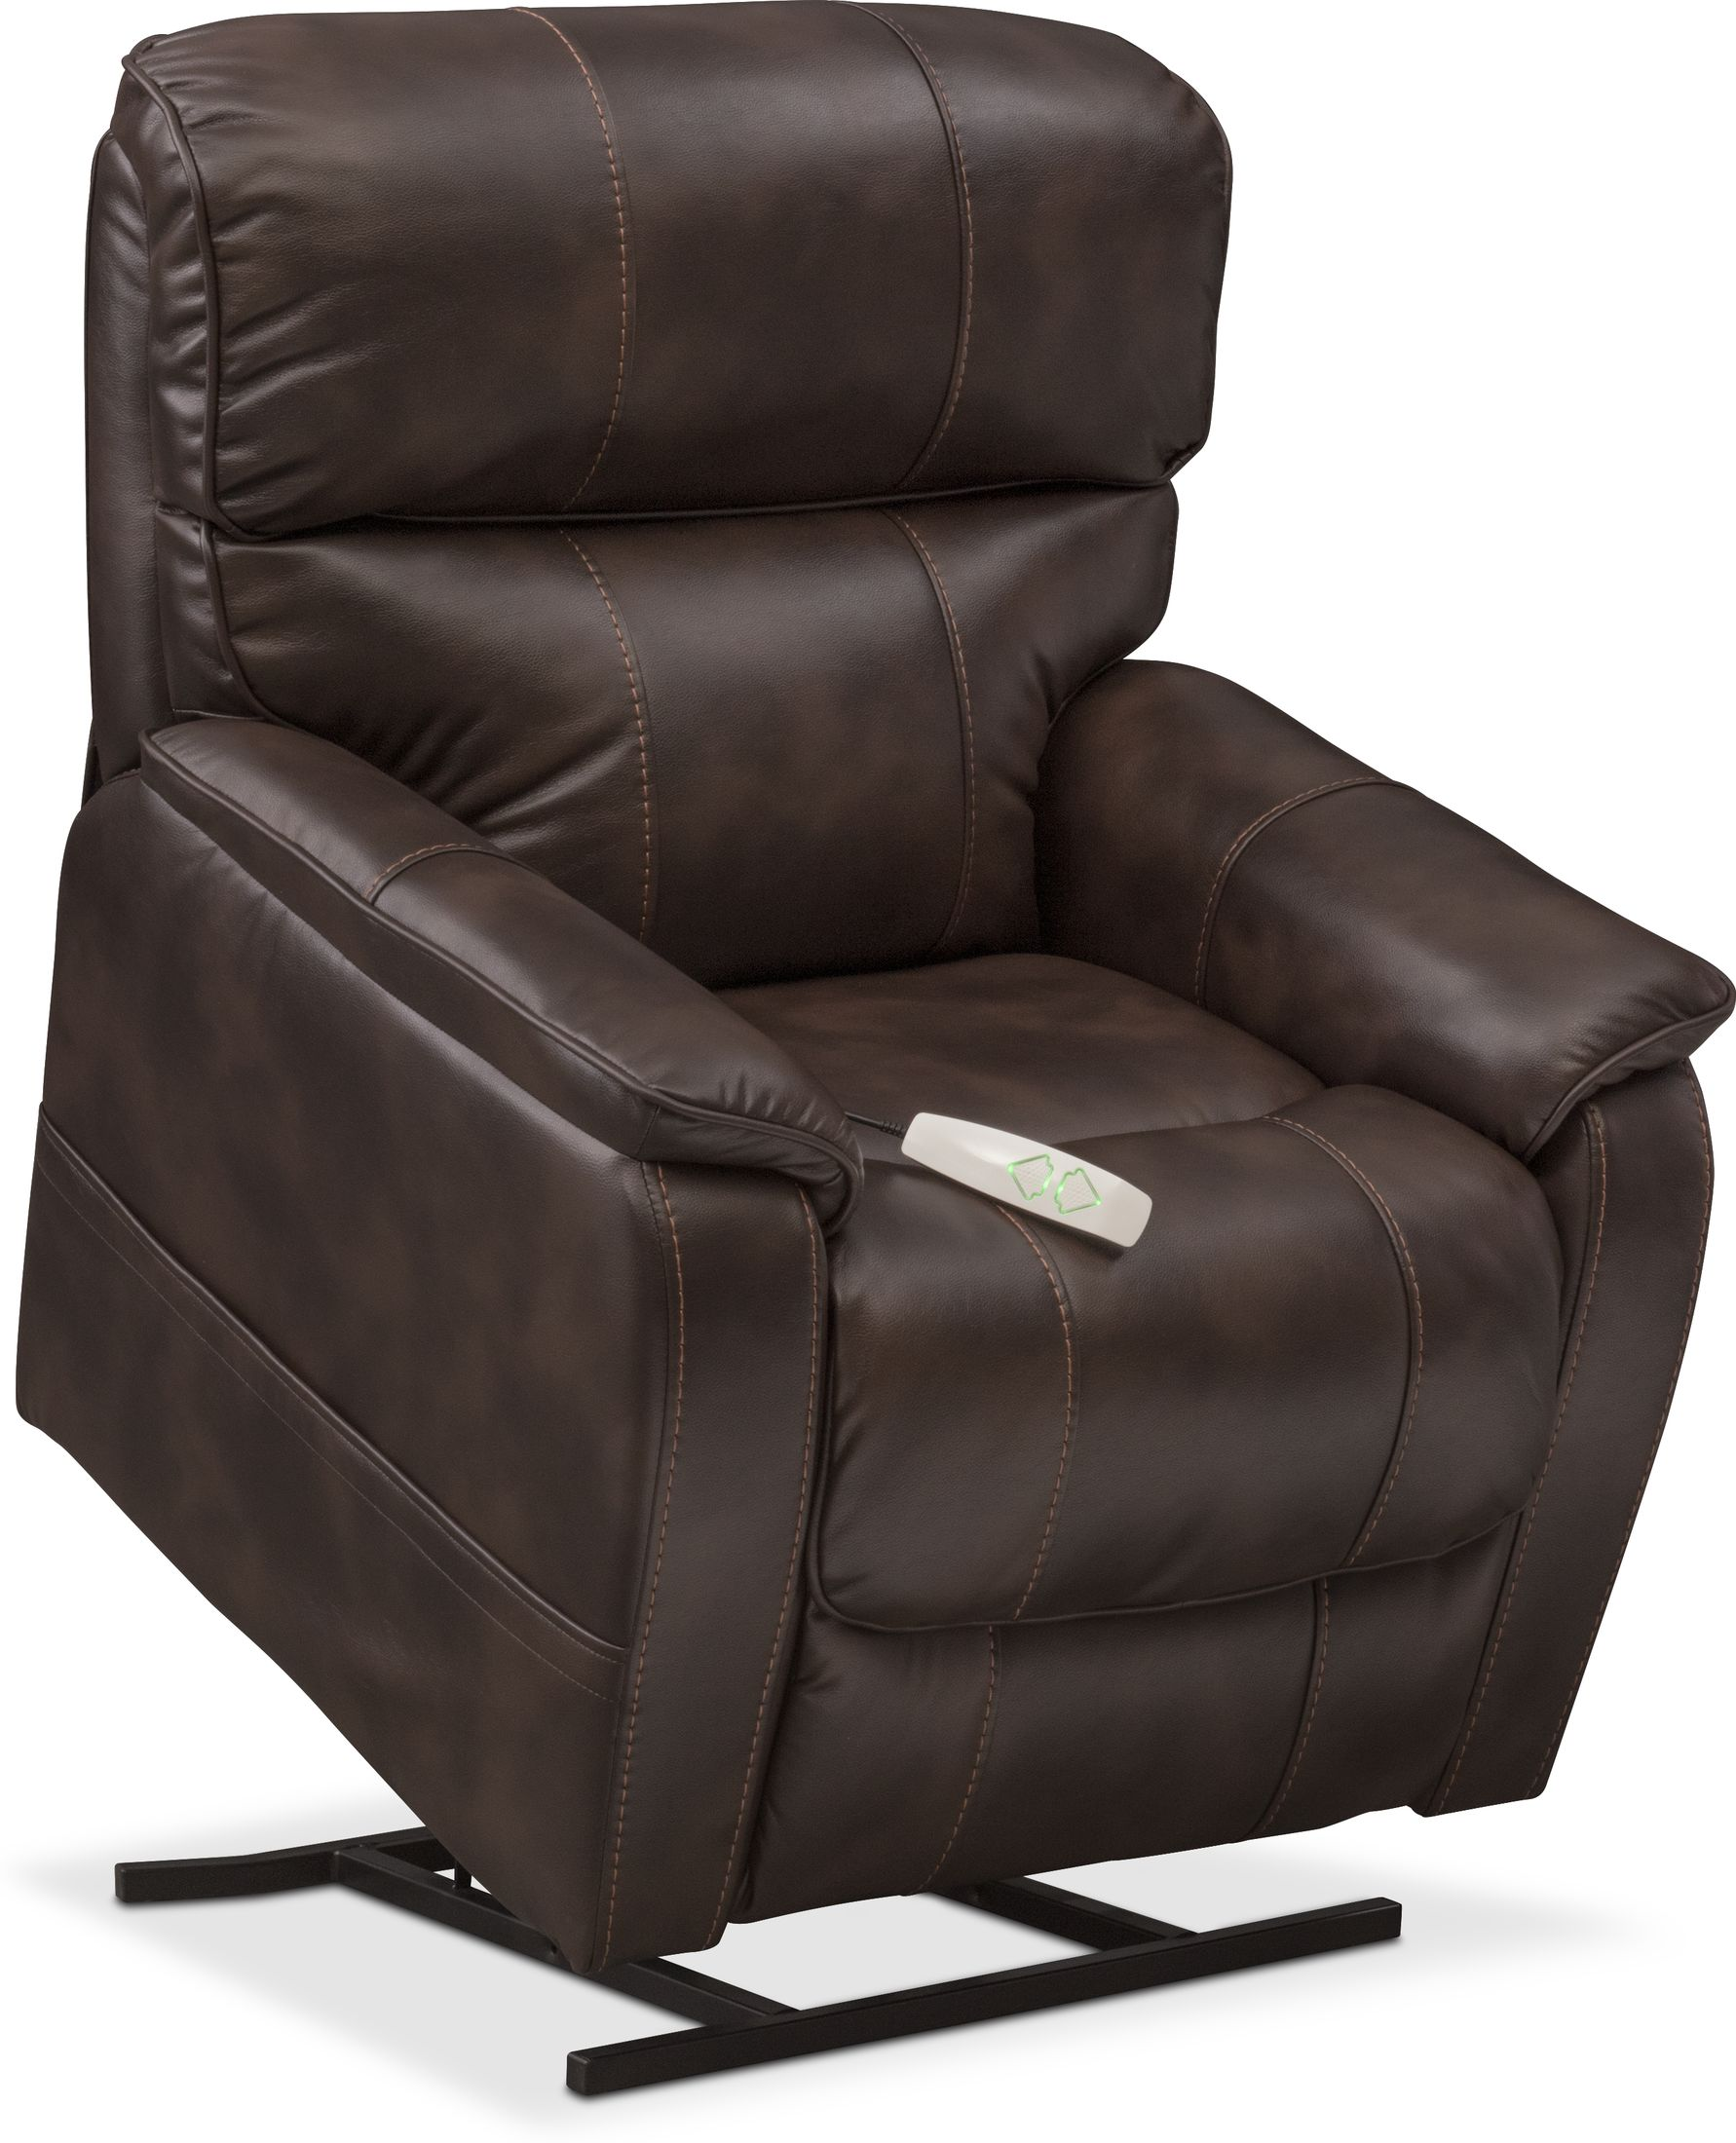 Living Room Furniture - Mondo Power Lift Recliner